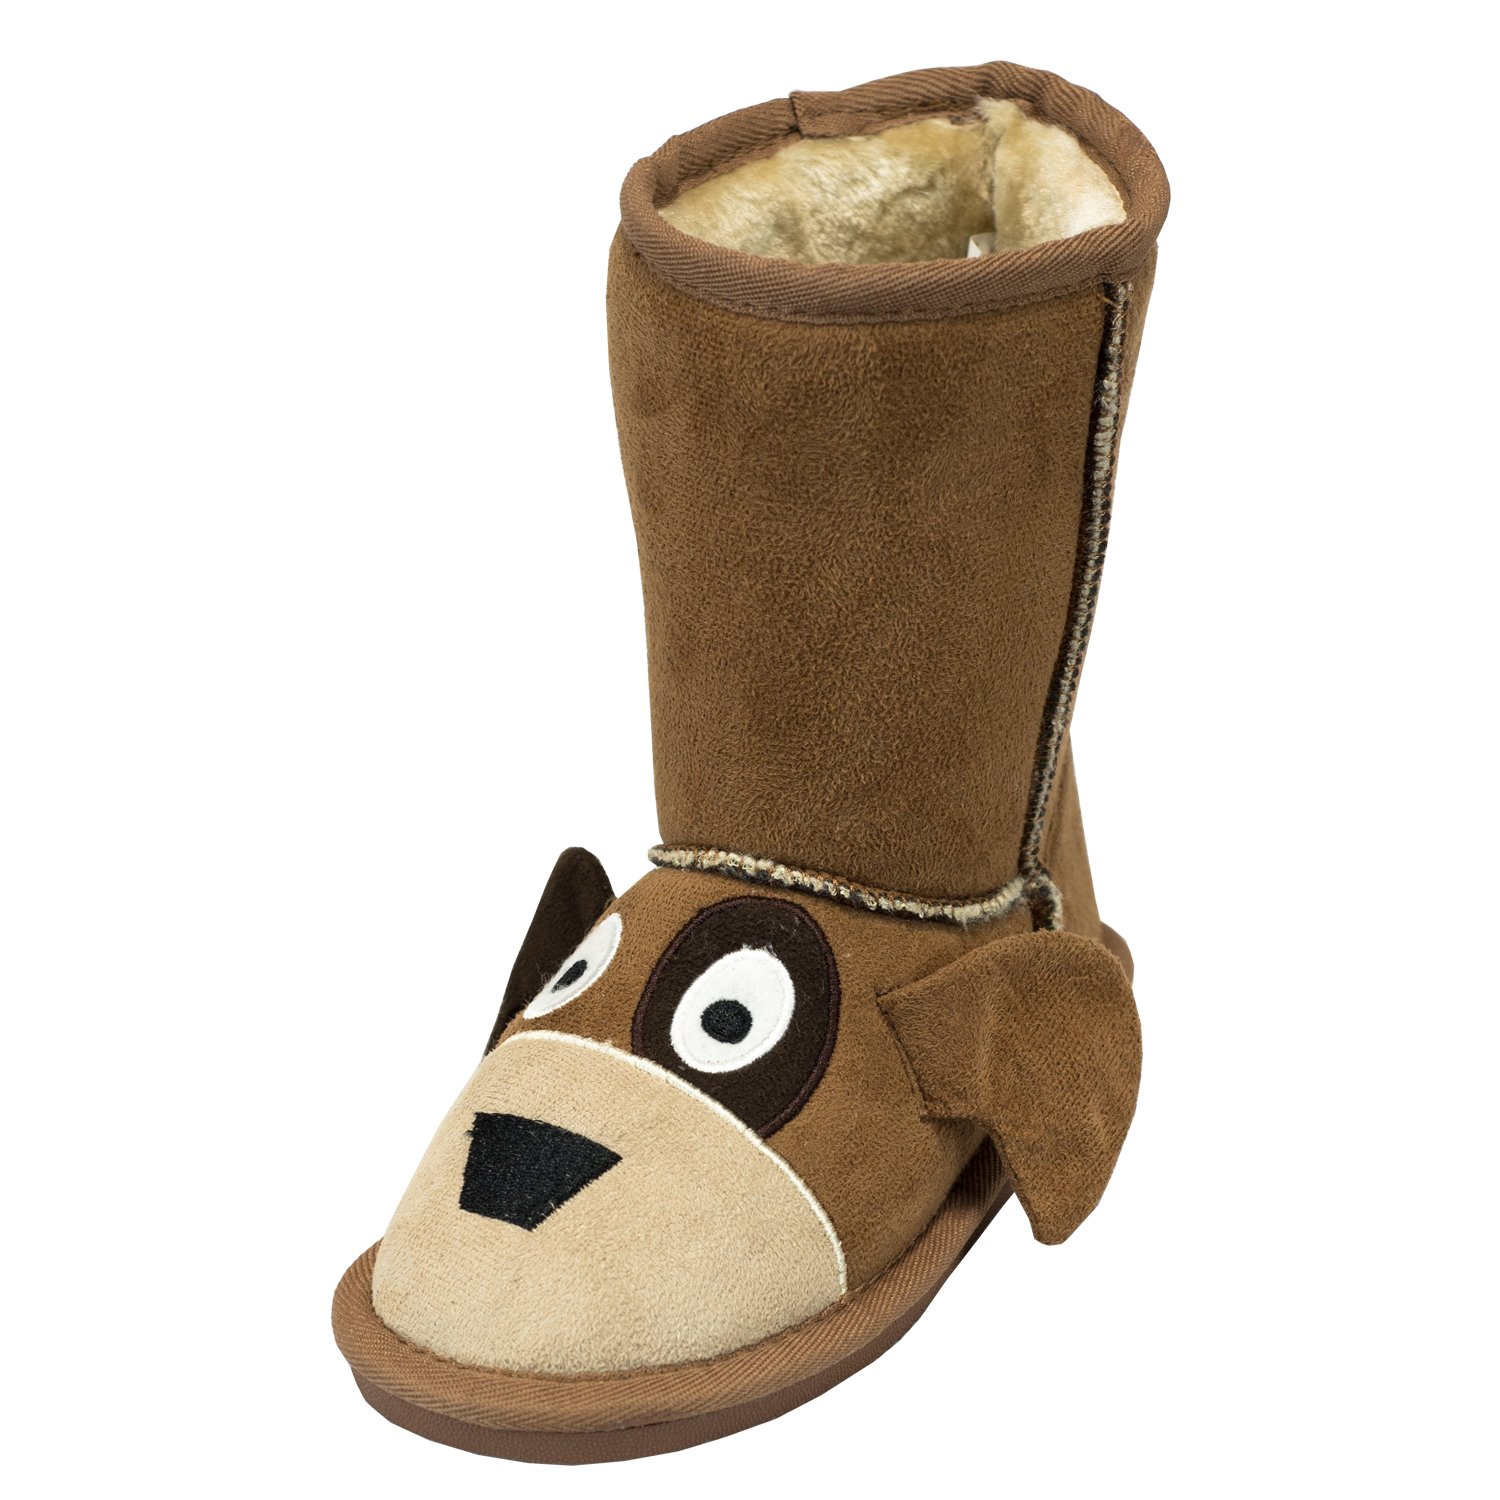 Dog Toasty Toez Cute Animal Character Slippers for Kids by LazyOne | Boys and Girls Creature Slipper Boots